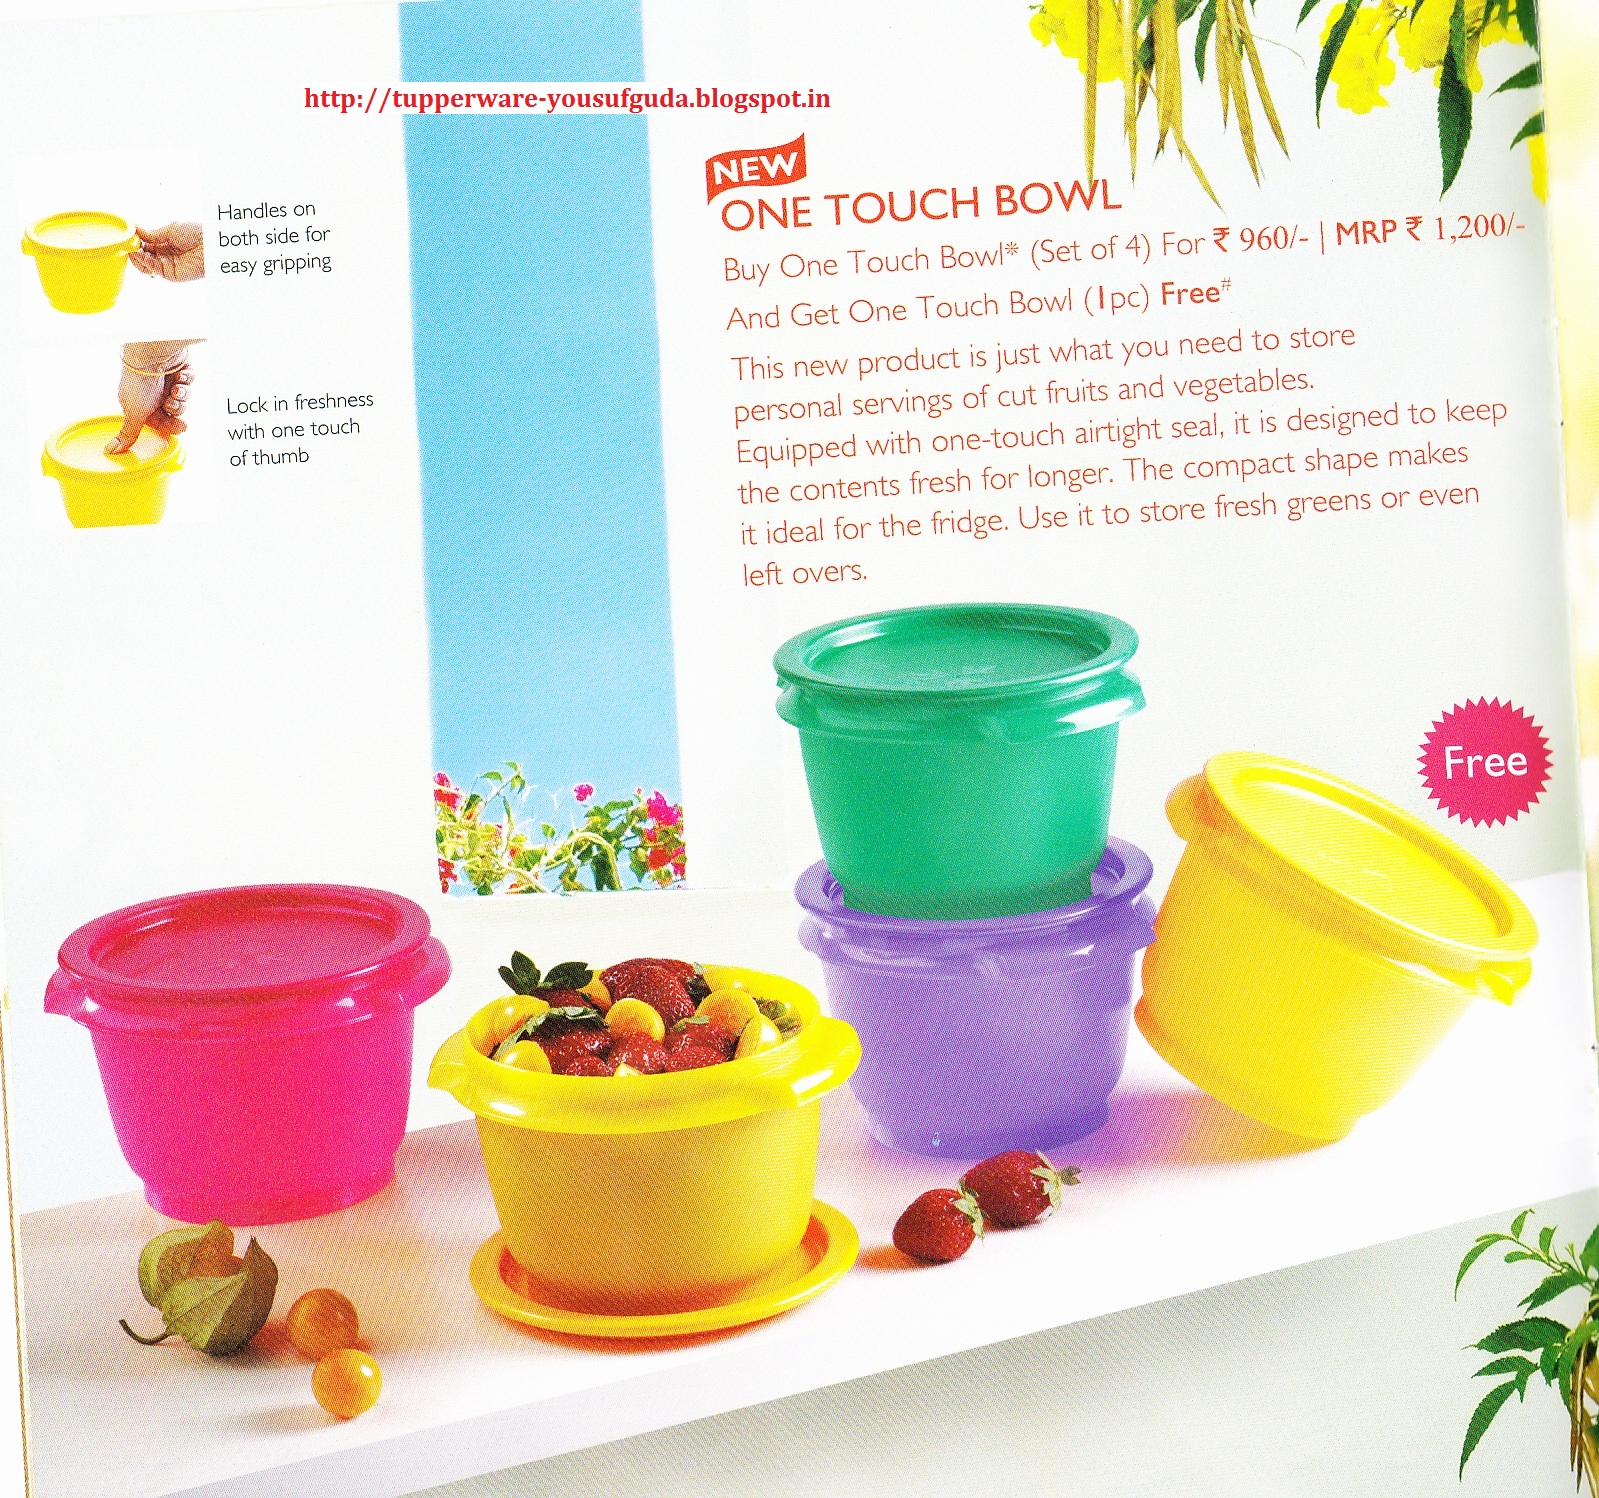 Tupperware catalogue till 31.12.2018